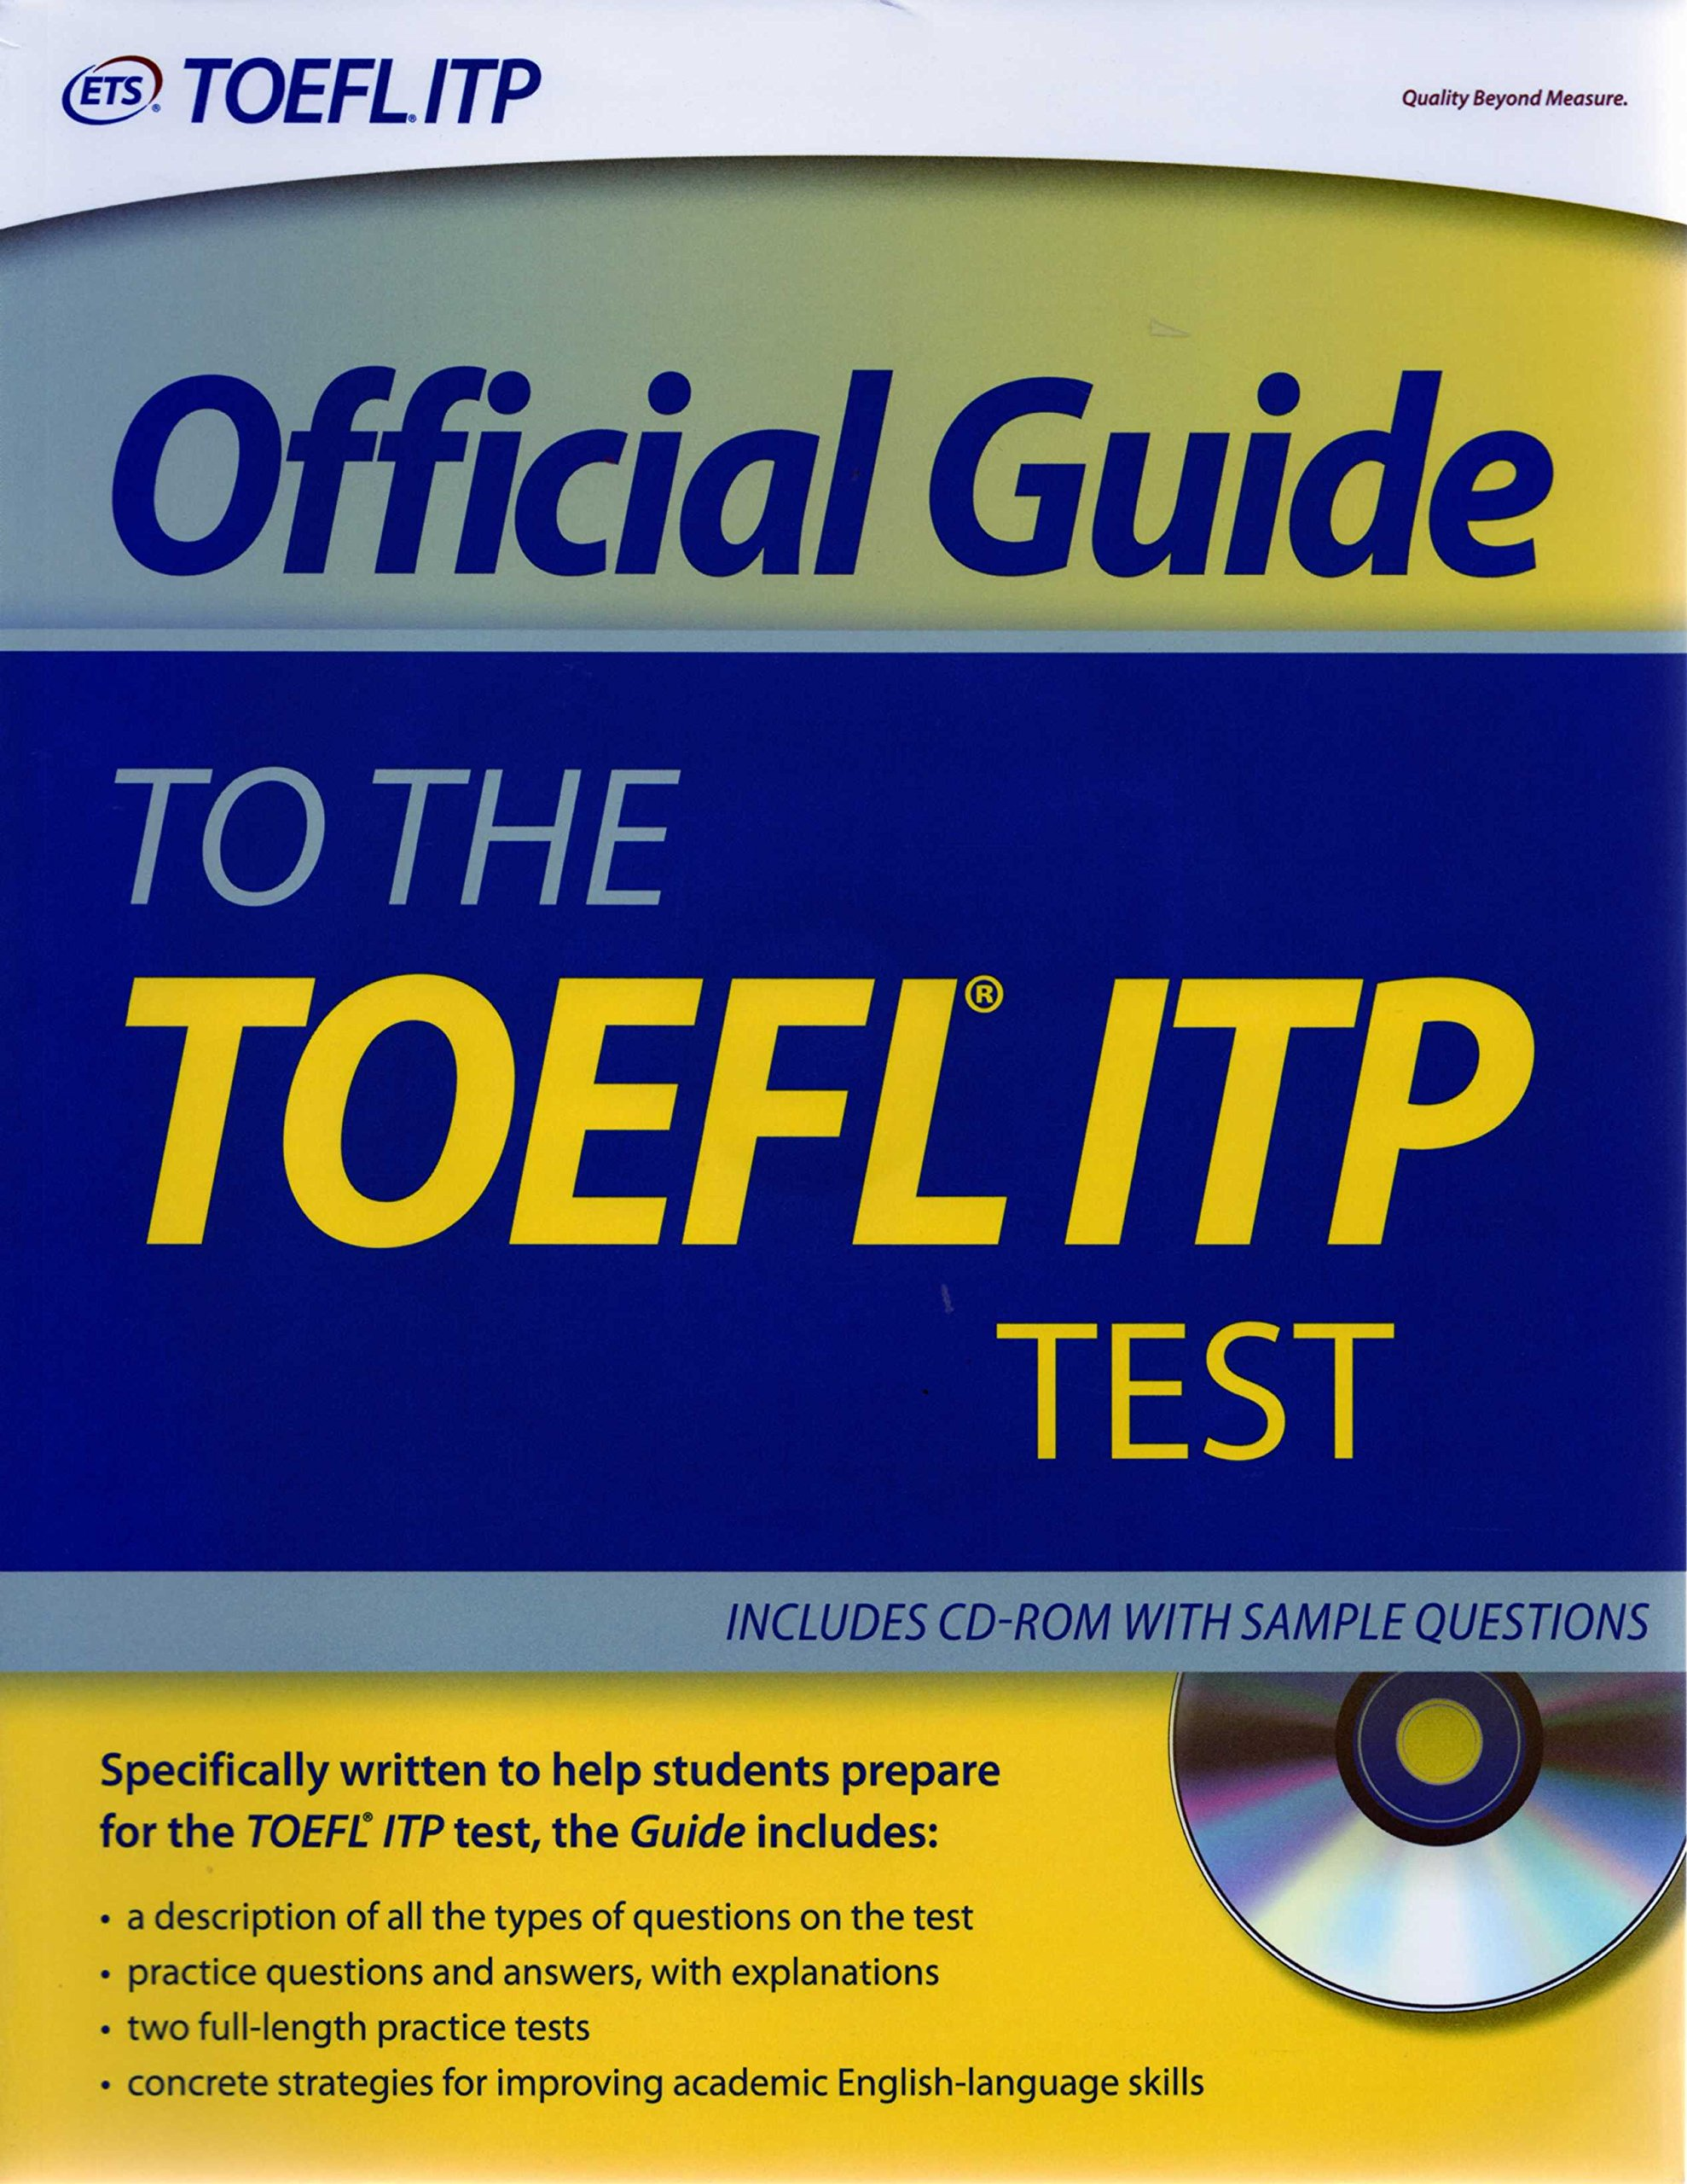 Official guide to the toefl itp test youtube.